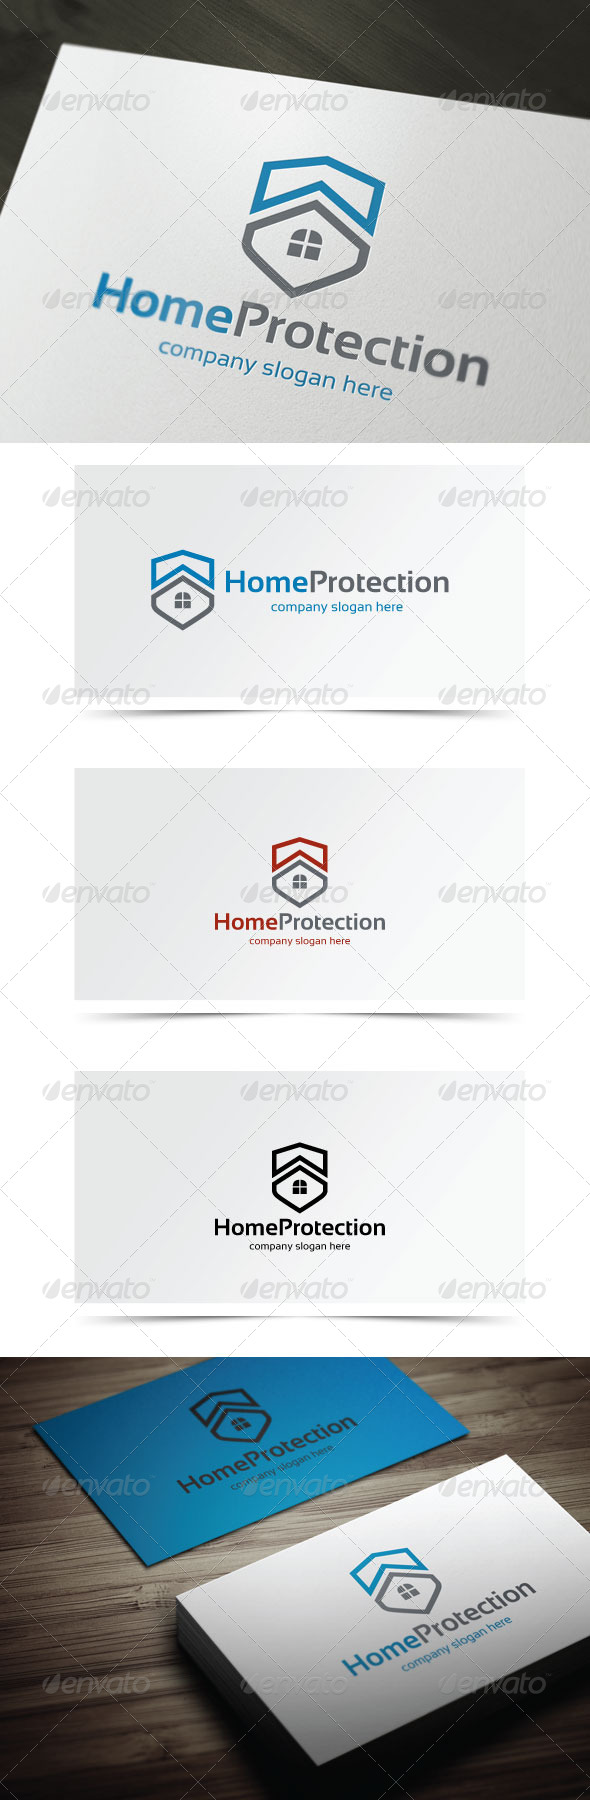 GraphicRiver Home Protection 6332837